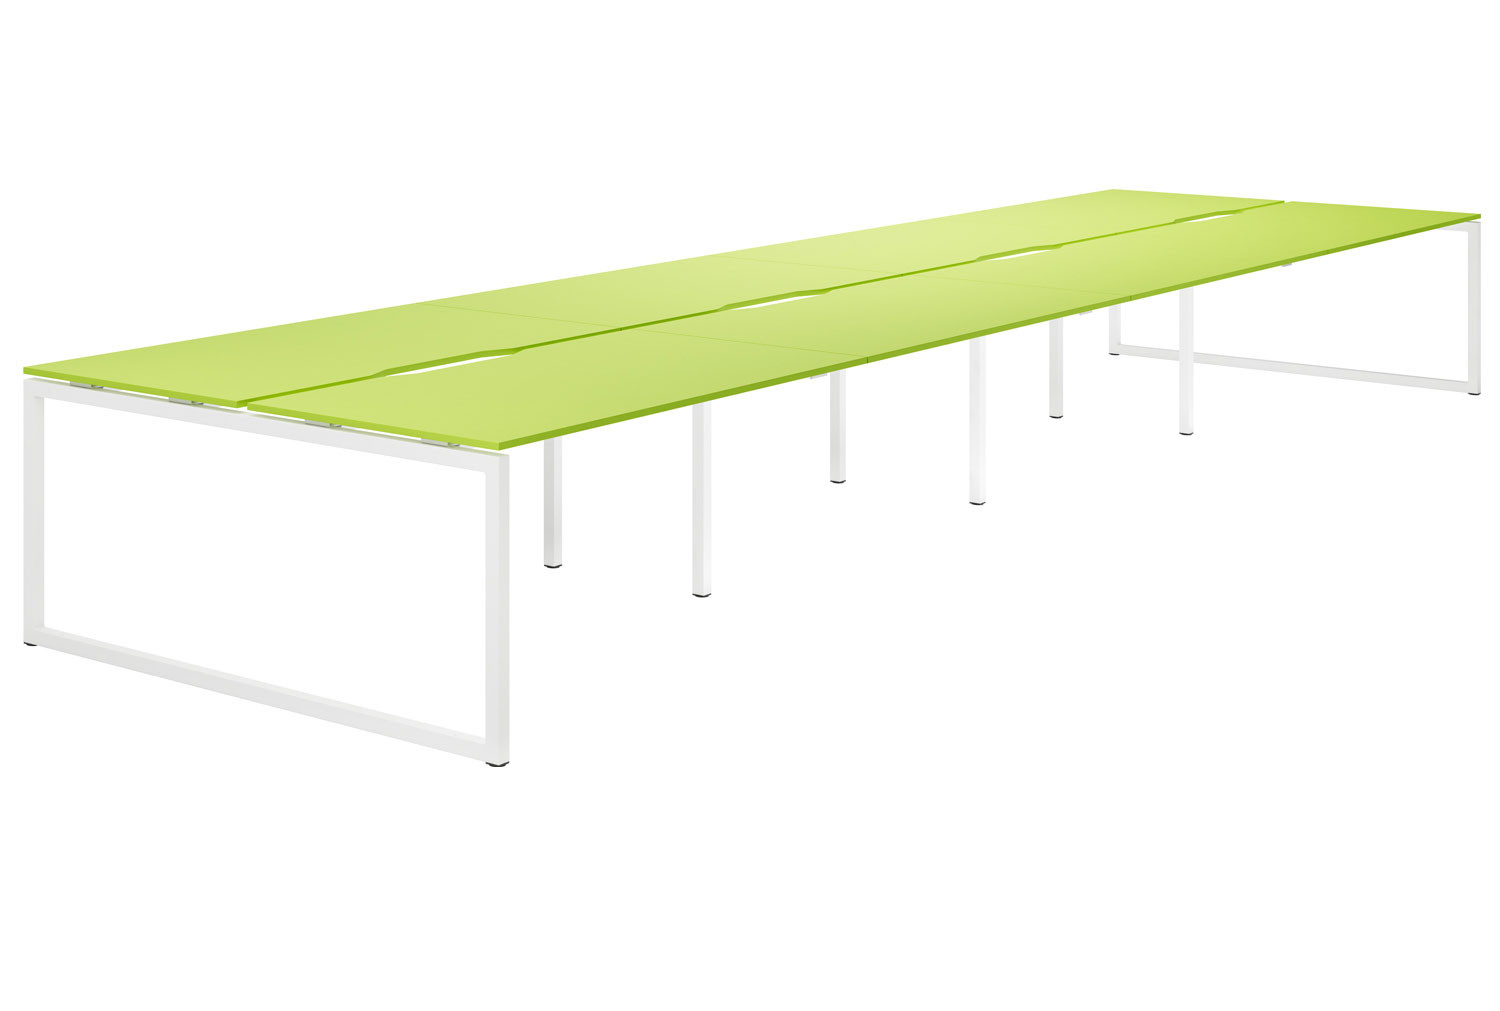 Campos Hooped Leg 8 Person Back To Back Bench Desk (Green)